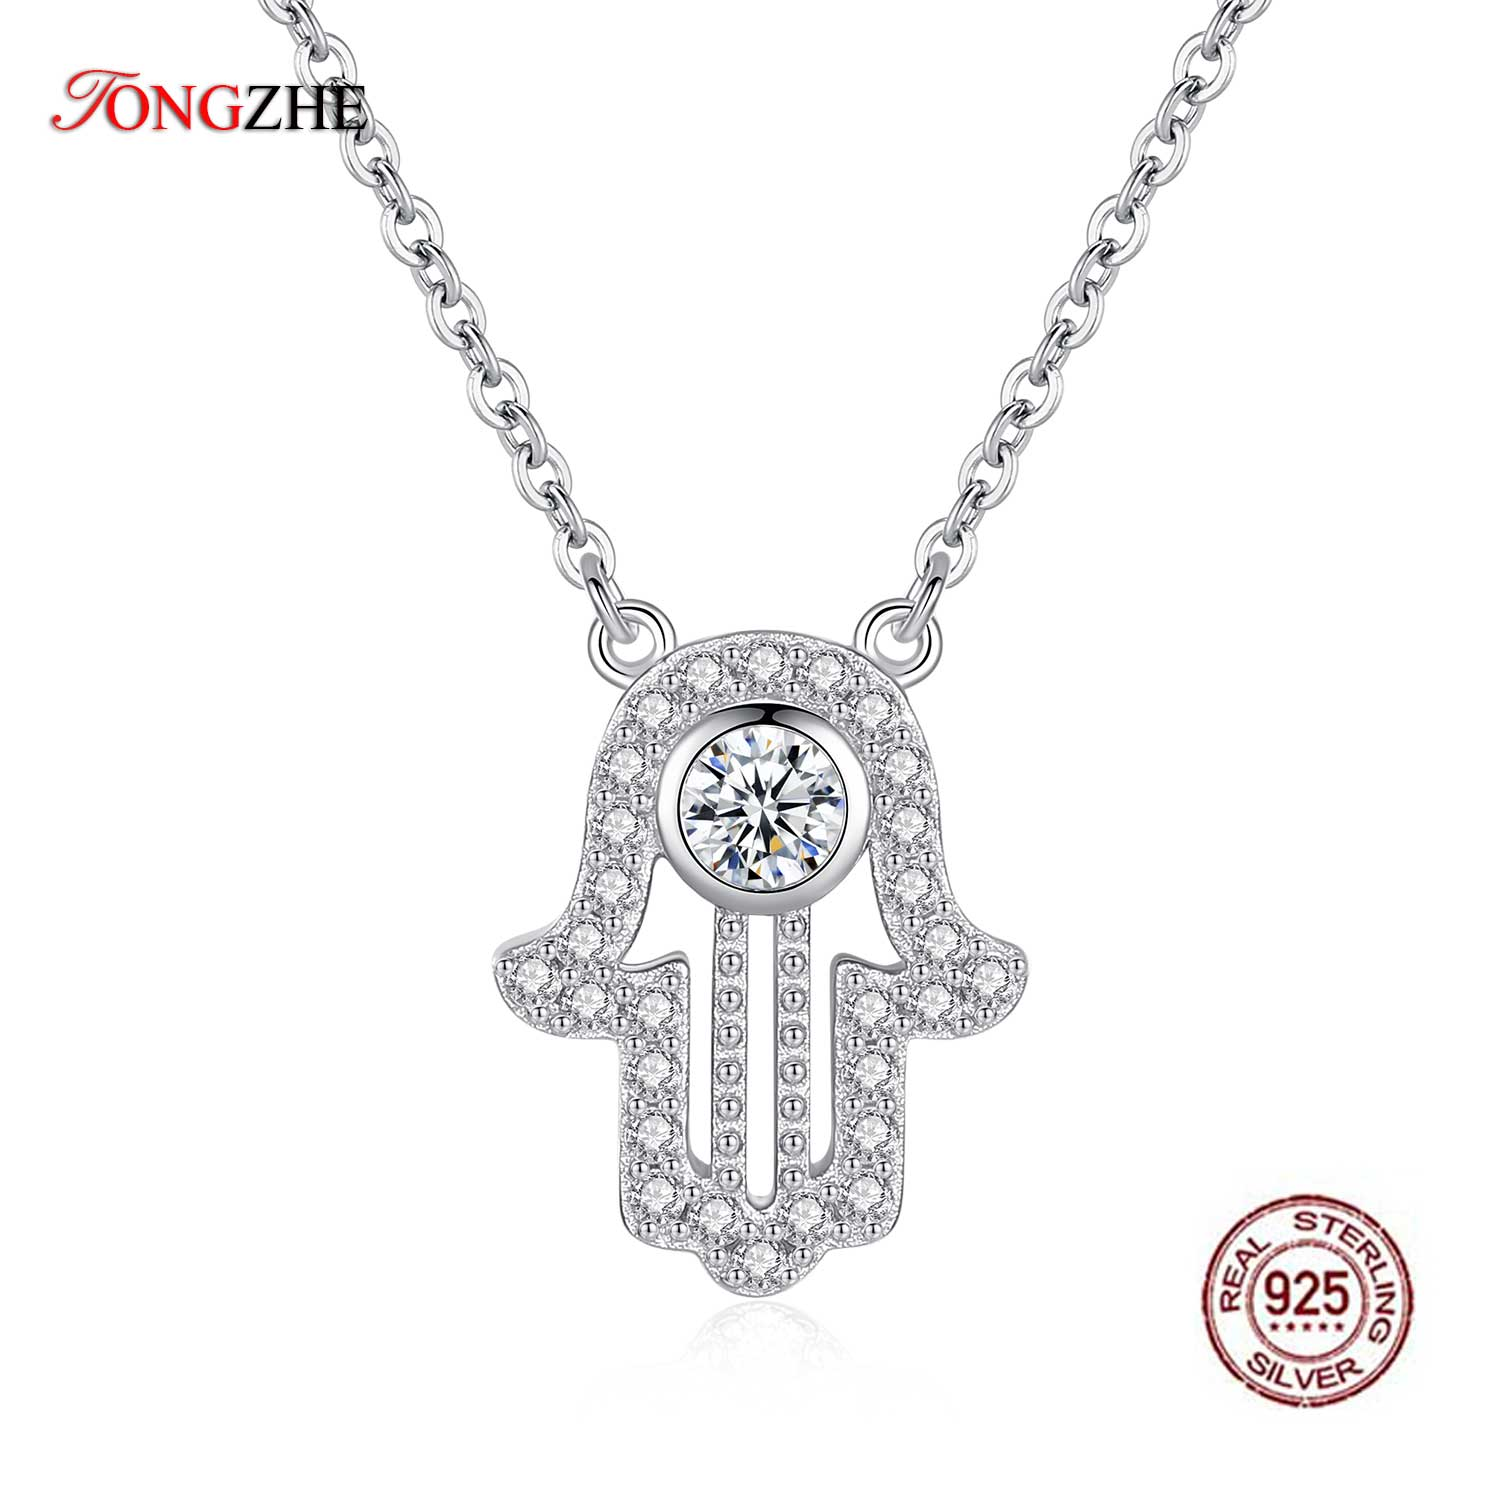 TONGZHE 925 sterling Silver Hand Hamsa Necklace Women Lucky Fatima Link Chain Long Initial Necklace Turkey Jewelry 2019 Choker-in Pendant Necklaces from Jewelry & Accessories